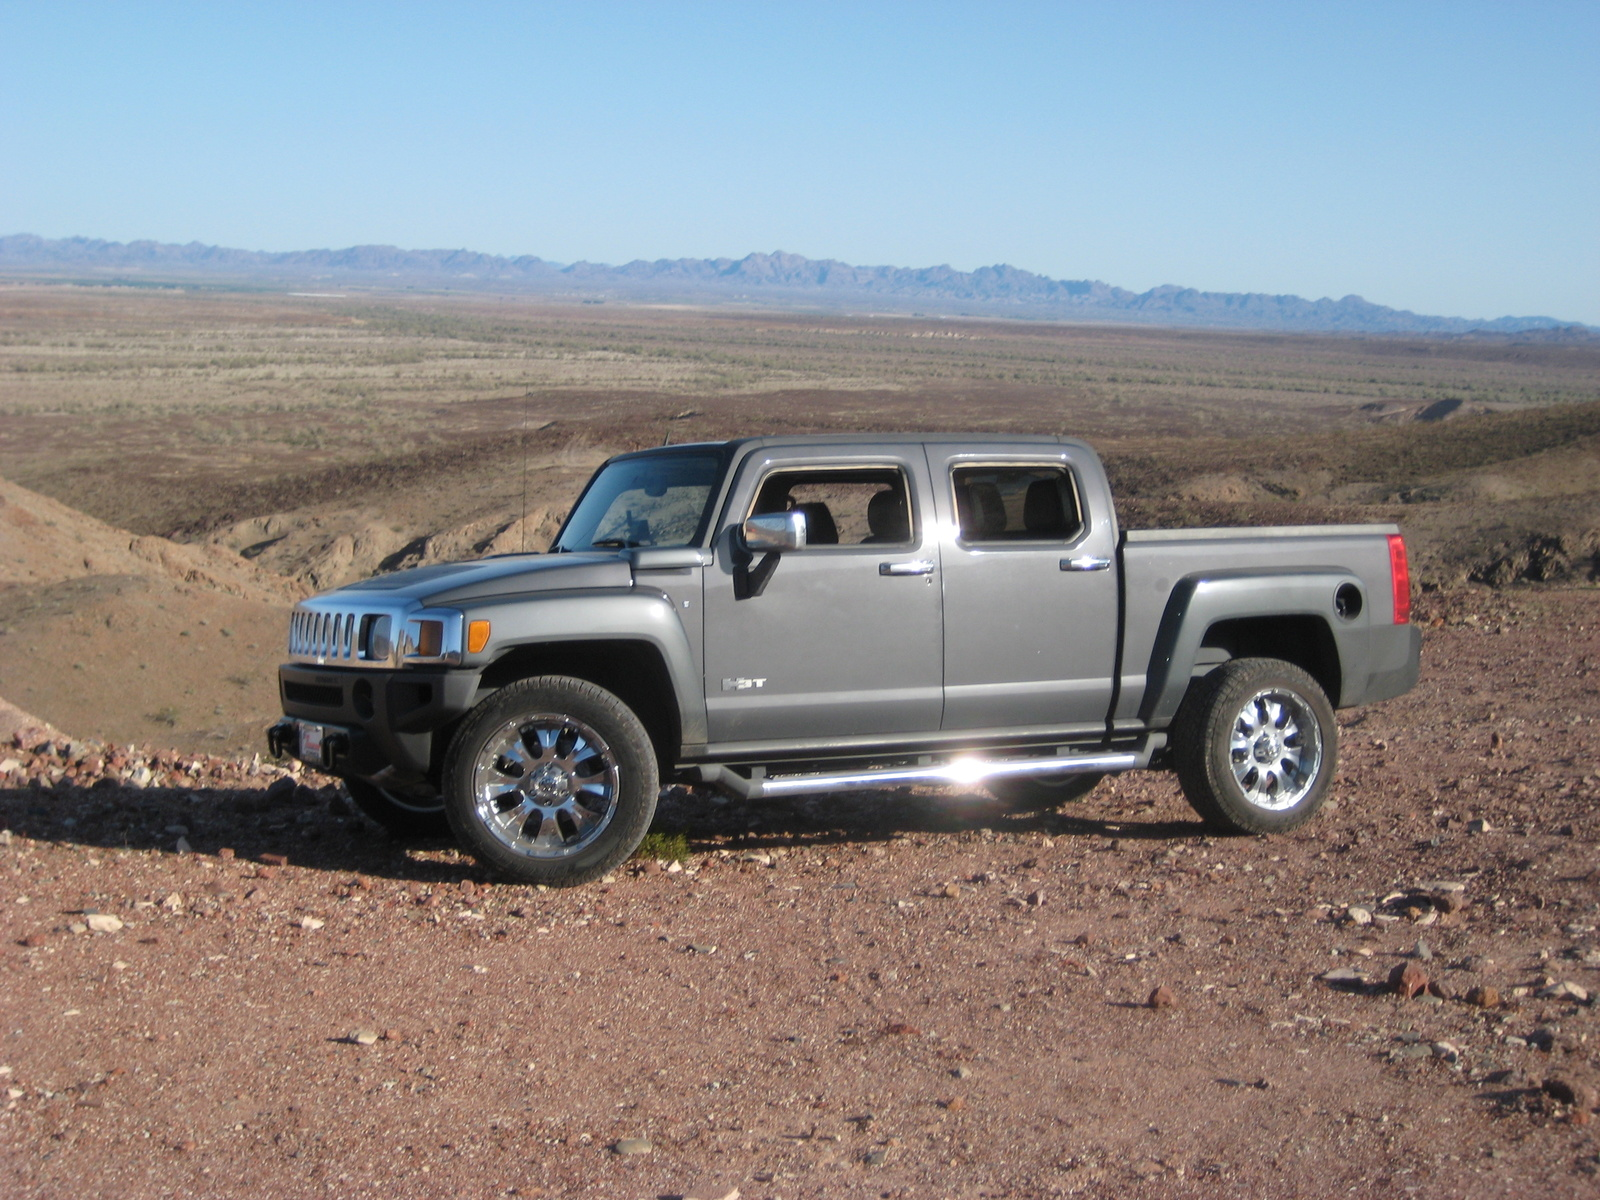 Hummer H3t For Sale in